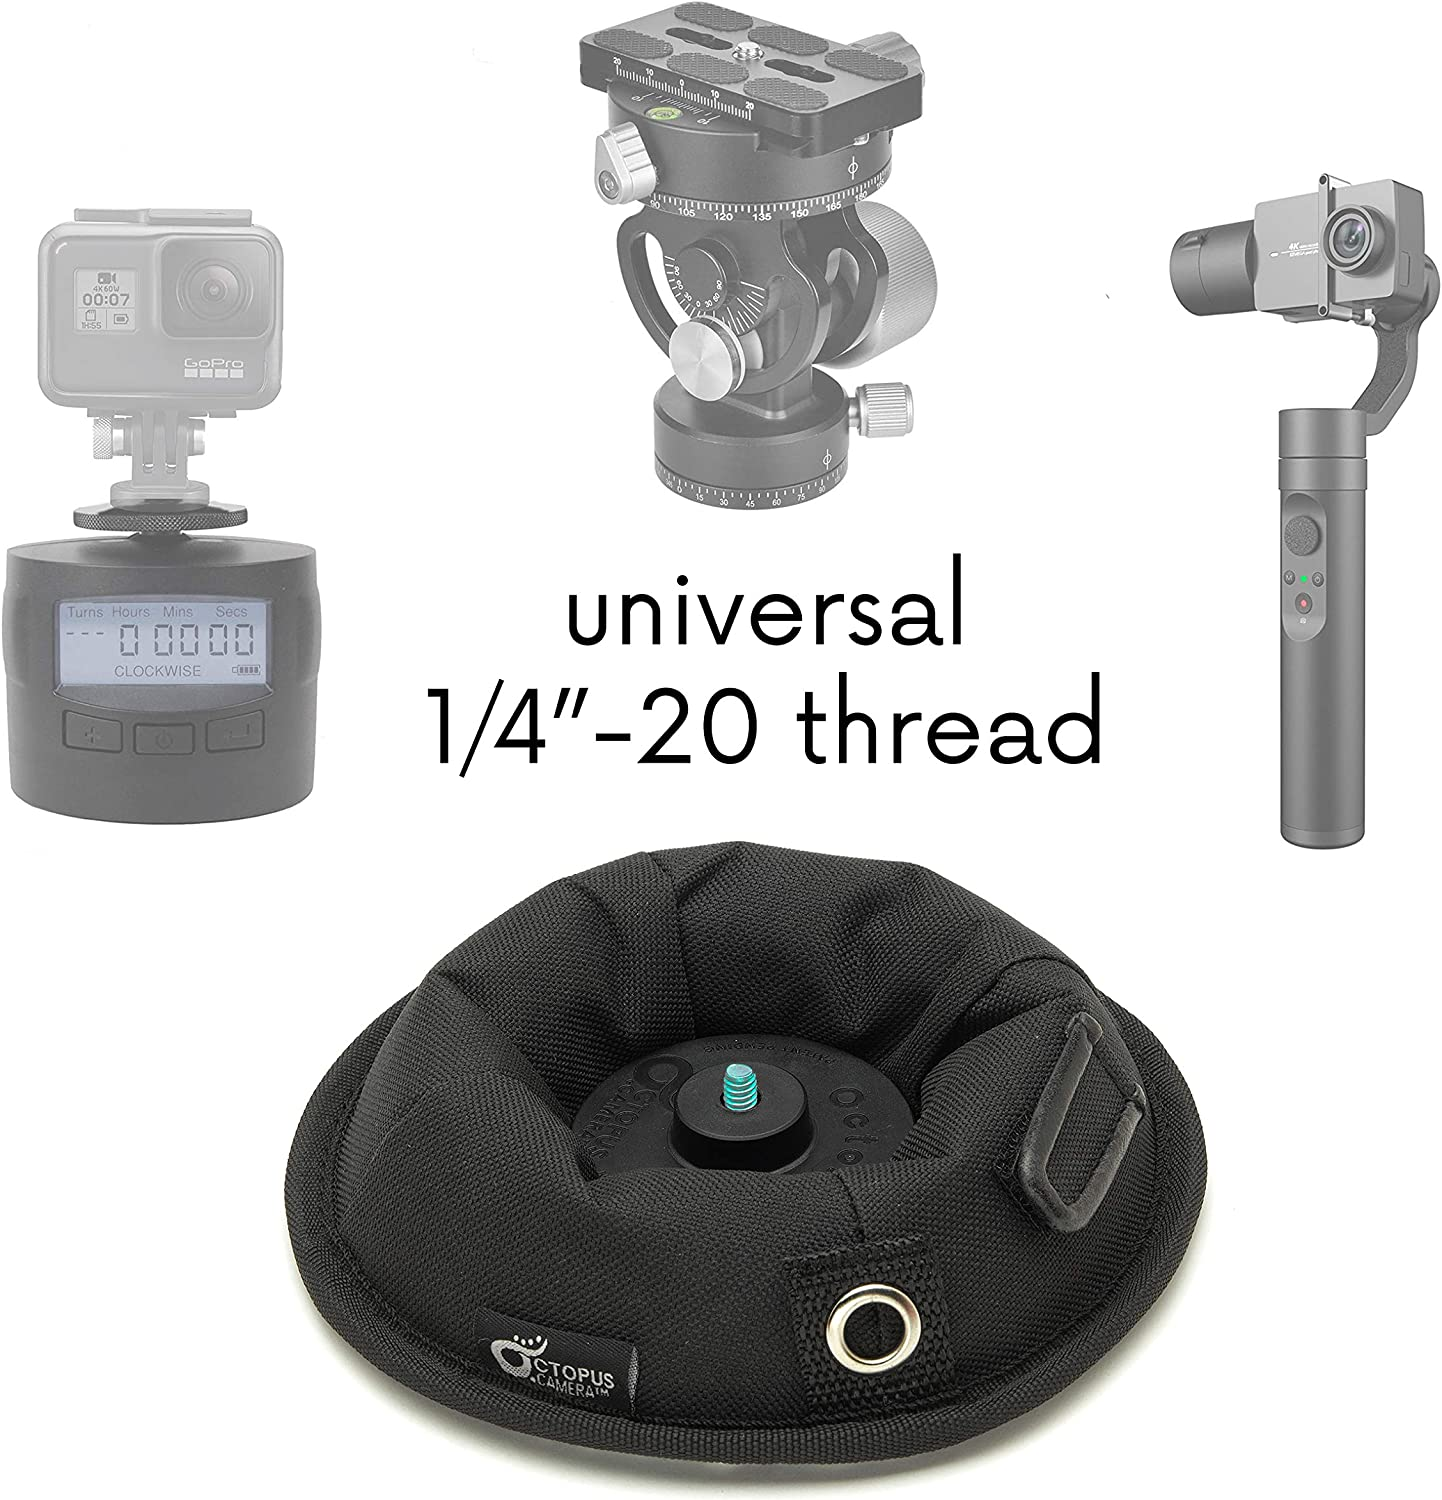 """OctoPad Universal Base Stand and Table Mini Tripod, for Travel, Mirrorless, Action 360 Camera, Cell Phone, Smartphone, LED Light, Flash Unit, Selfie Stick and Microphone, with All-Purpose 1/4"""" Thread : Camera & Photo"""